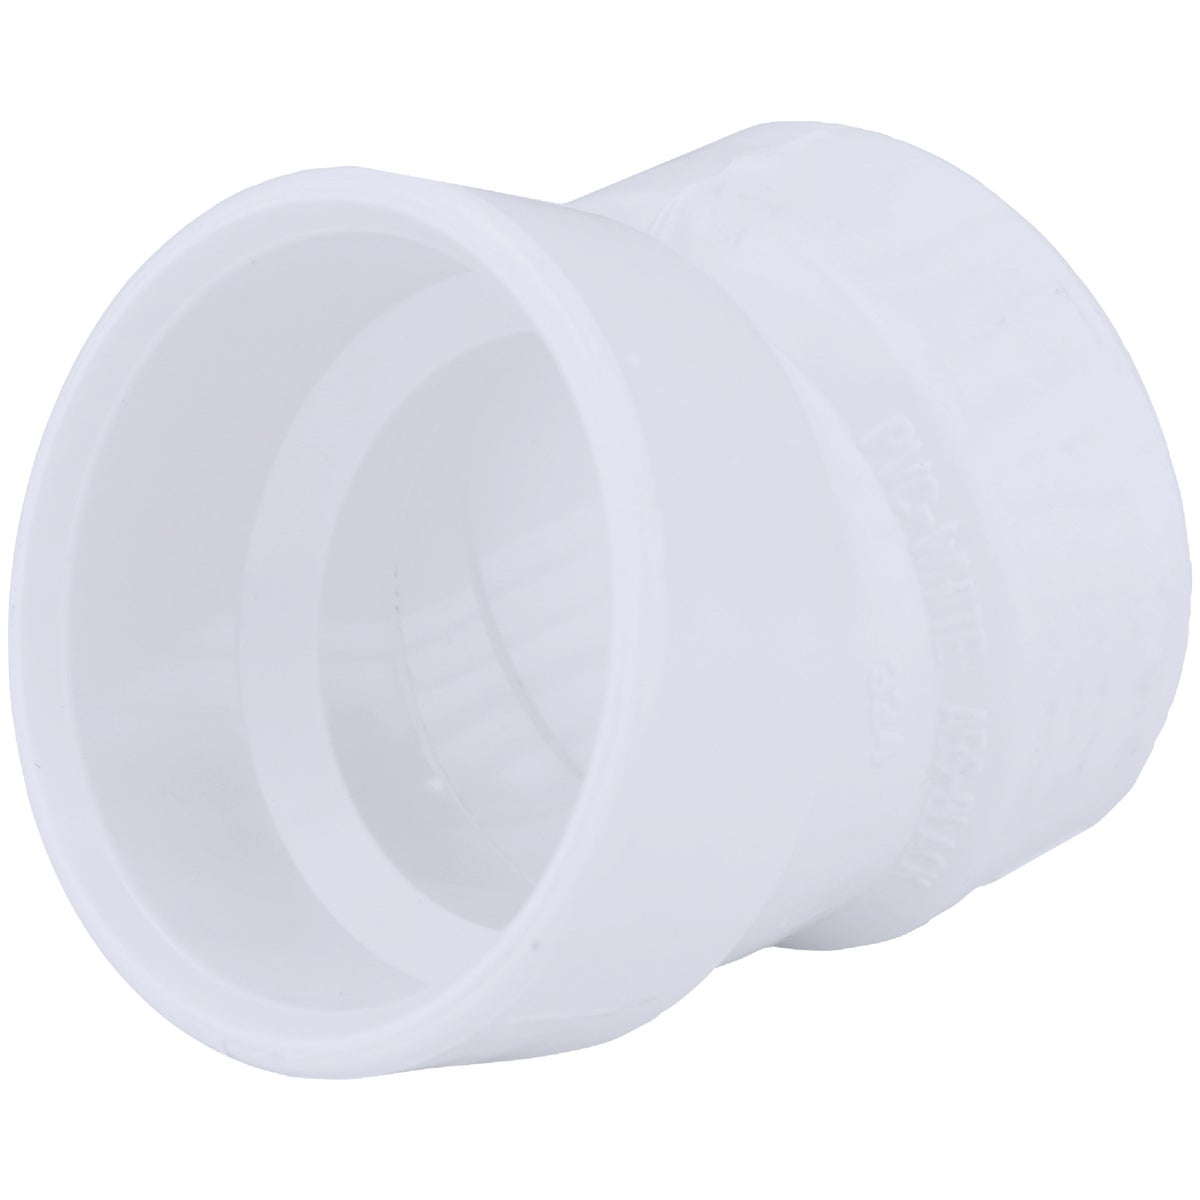 "1-1/2"" 22-1/2D DWV ELBOW - 70815 by Genova Inc  Pvc Dwv"